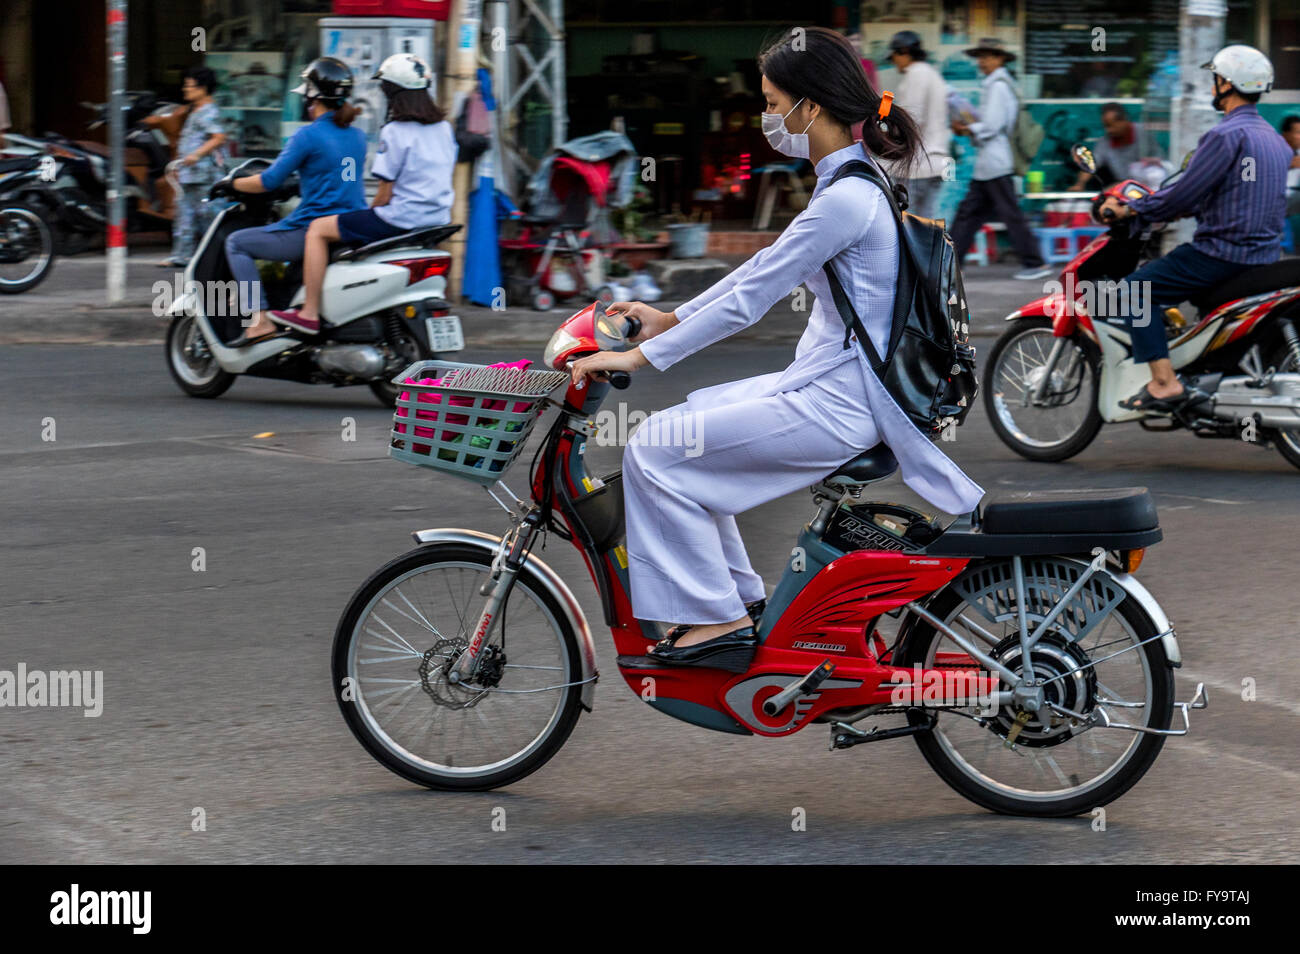 Lady In Hochi Minh City Vietnam Riding A Battery Aided